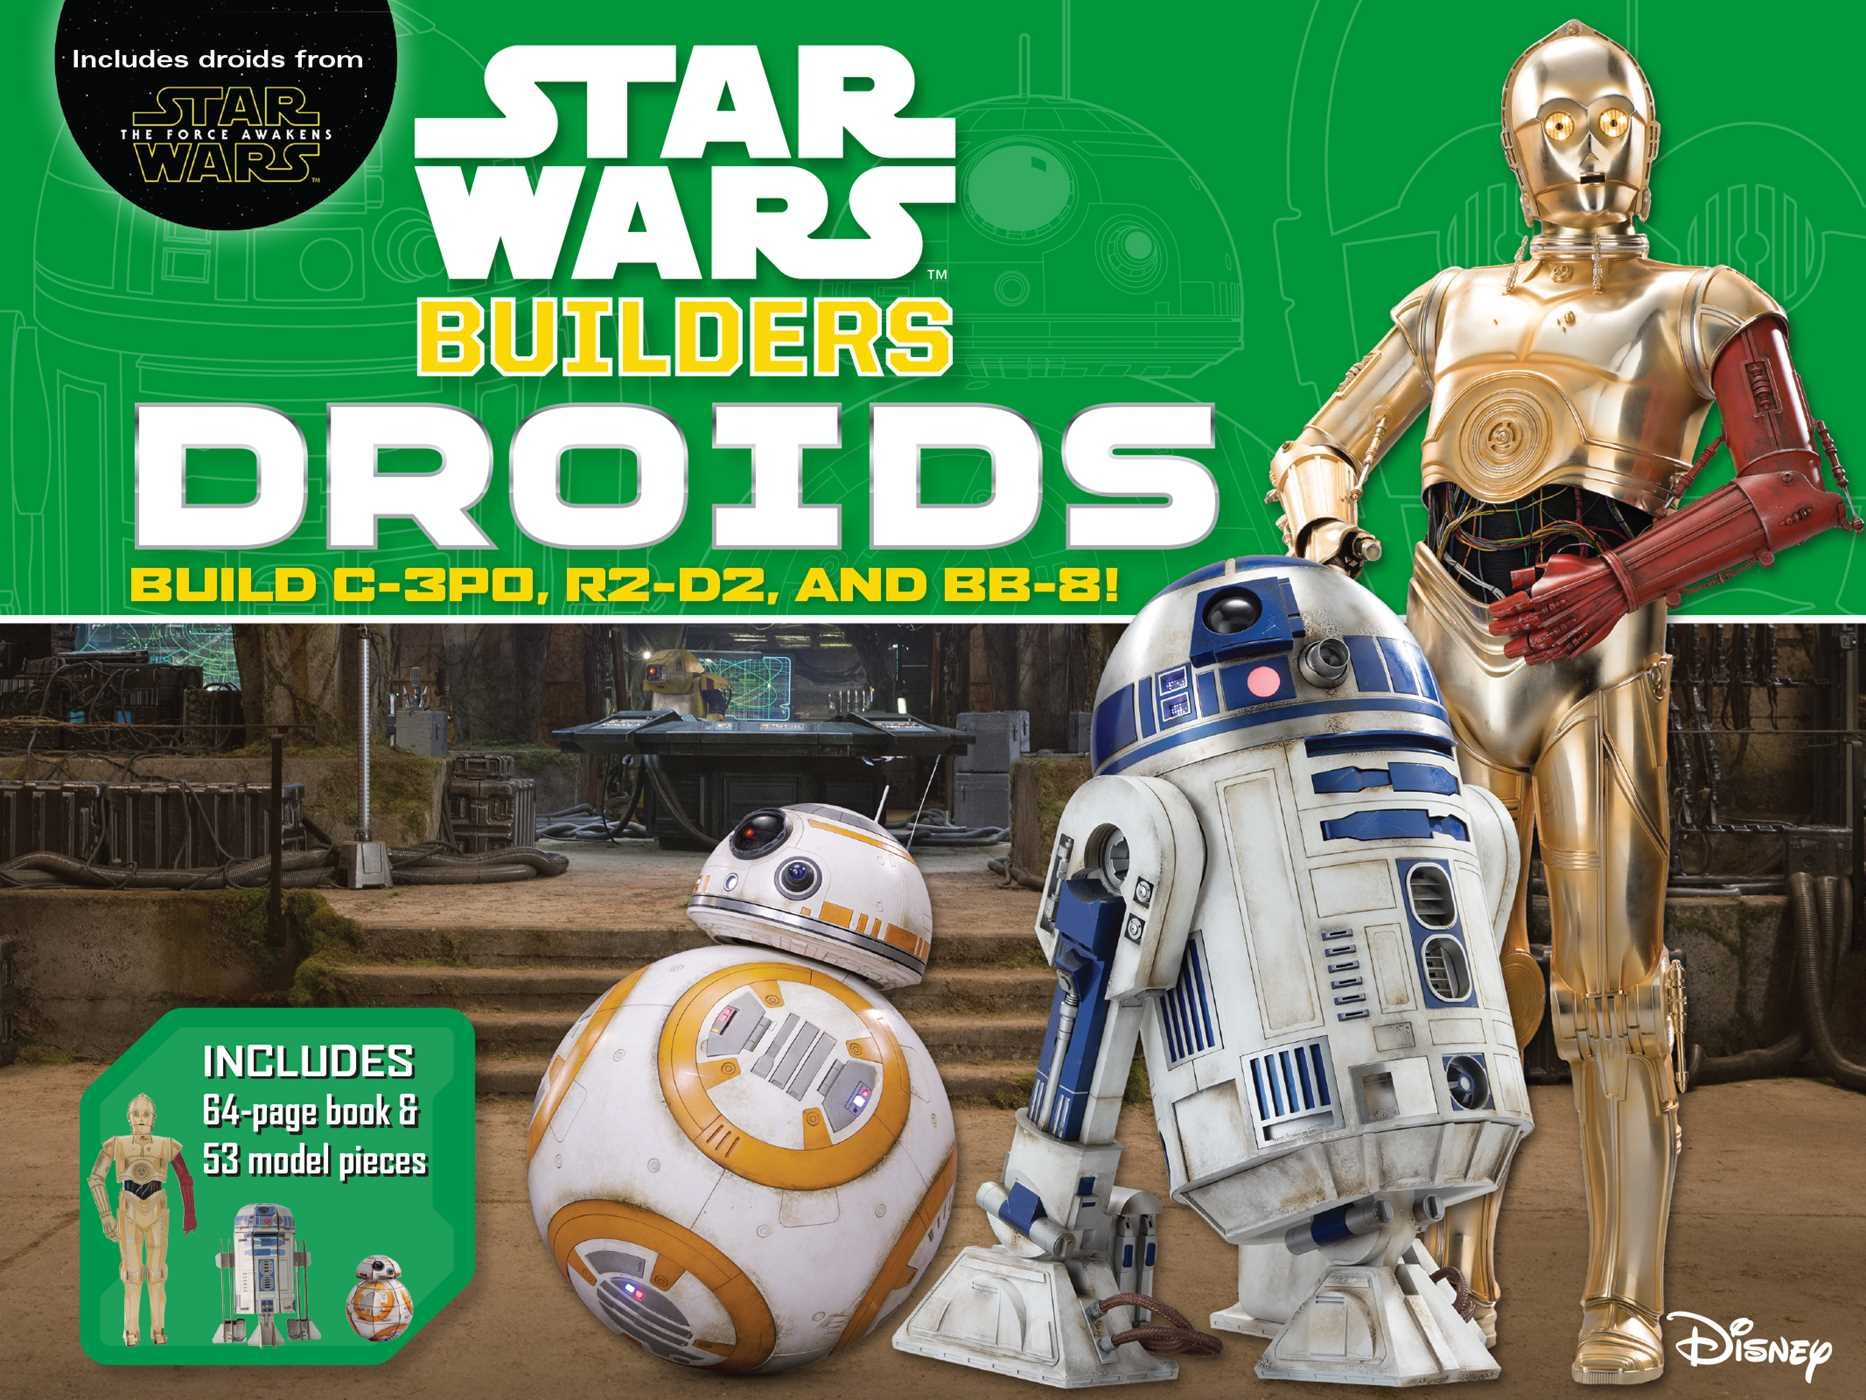 Star Wars Builders: Droids (Build R2-D2, C-3PO, and BB-8)